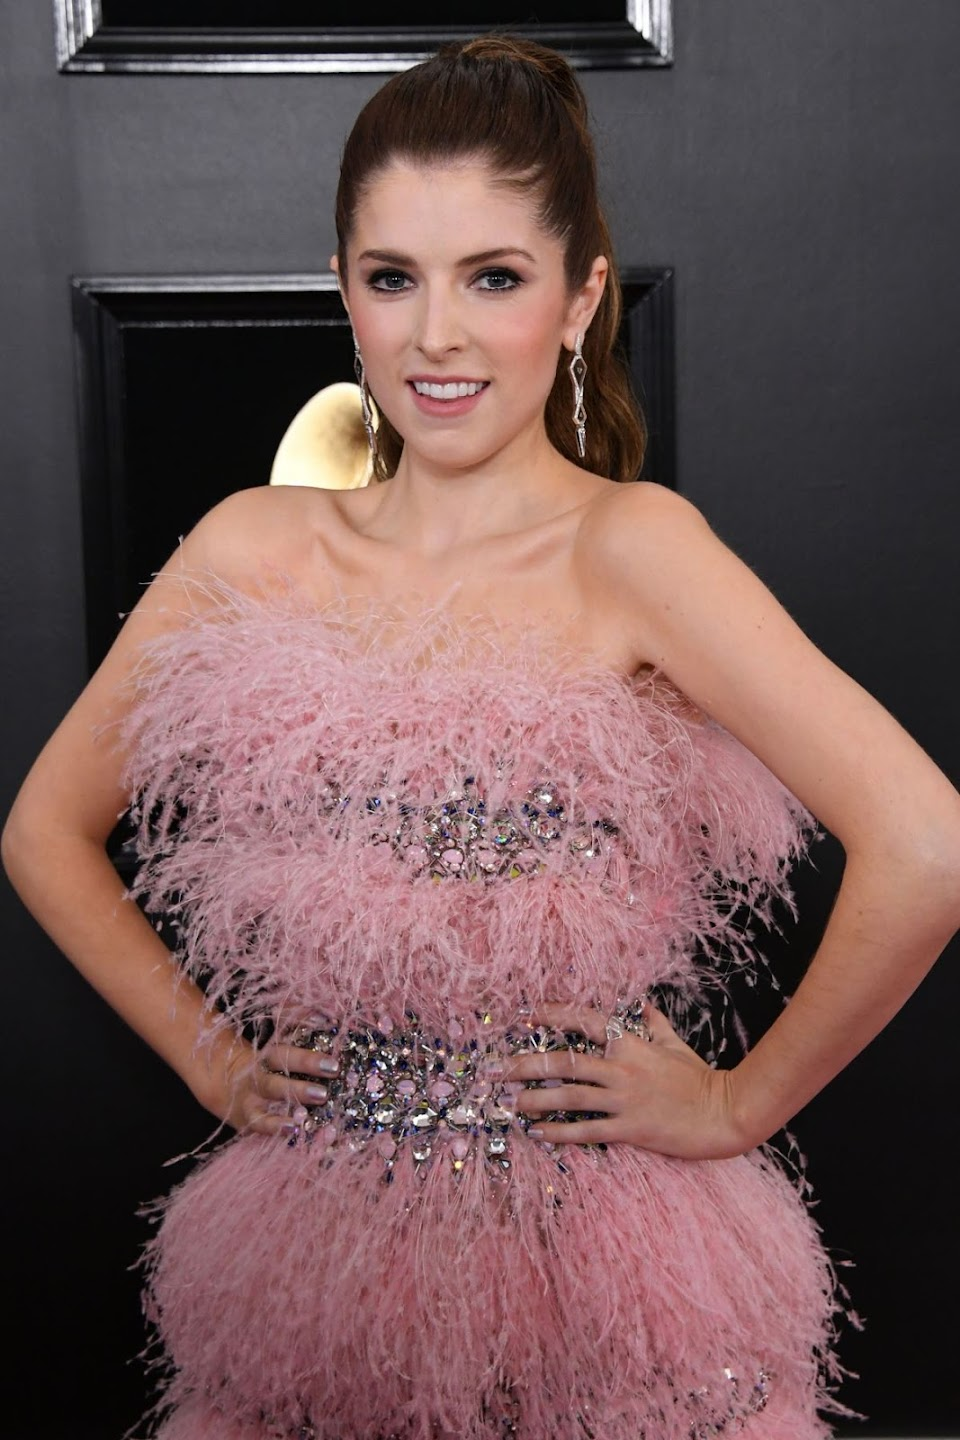 anna-kendrick-at-61st-annual-grammy-awards-in-los-angeles-1